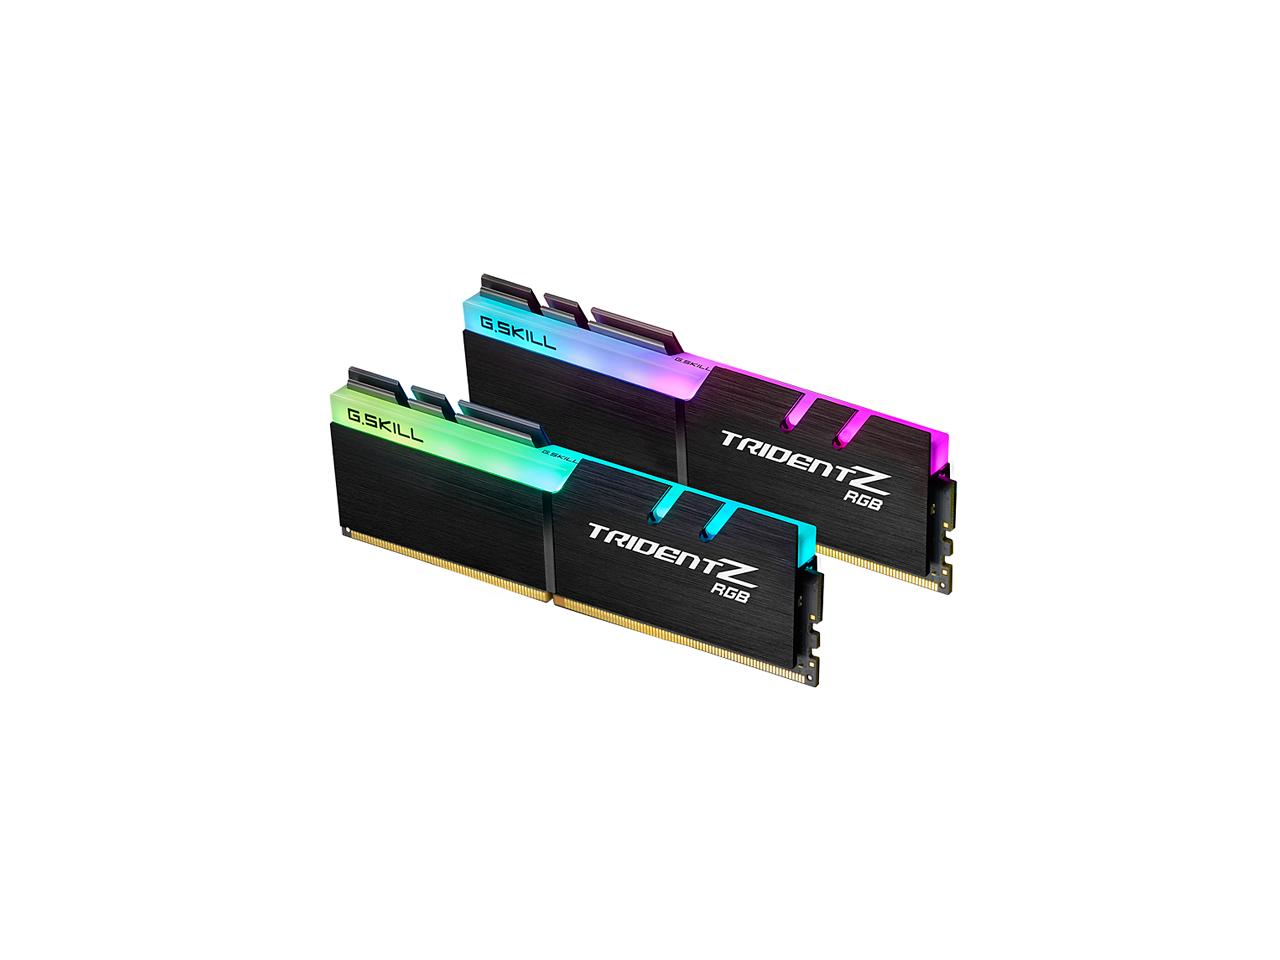 G.SKILL TridentZ RGB Series 16GB (2 x 8GB) 288-Pin DDR4 2400MHz (PC4 19200) Desktop Memory Model F4-2400C15D-16GTZR